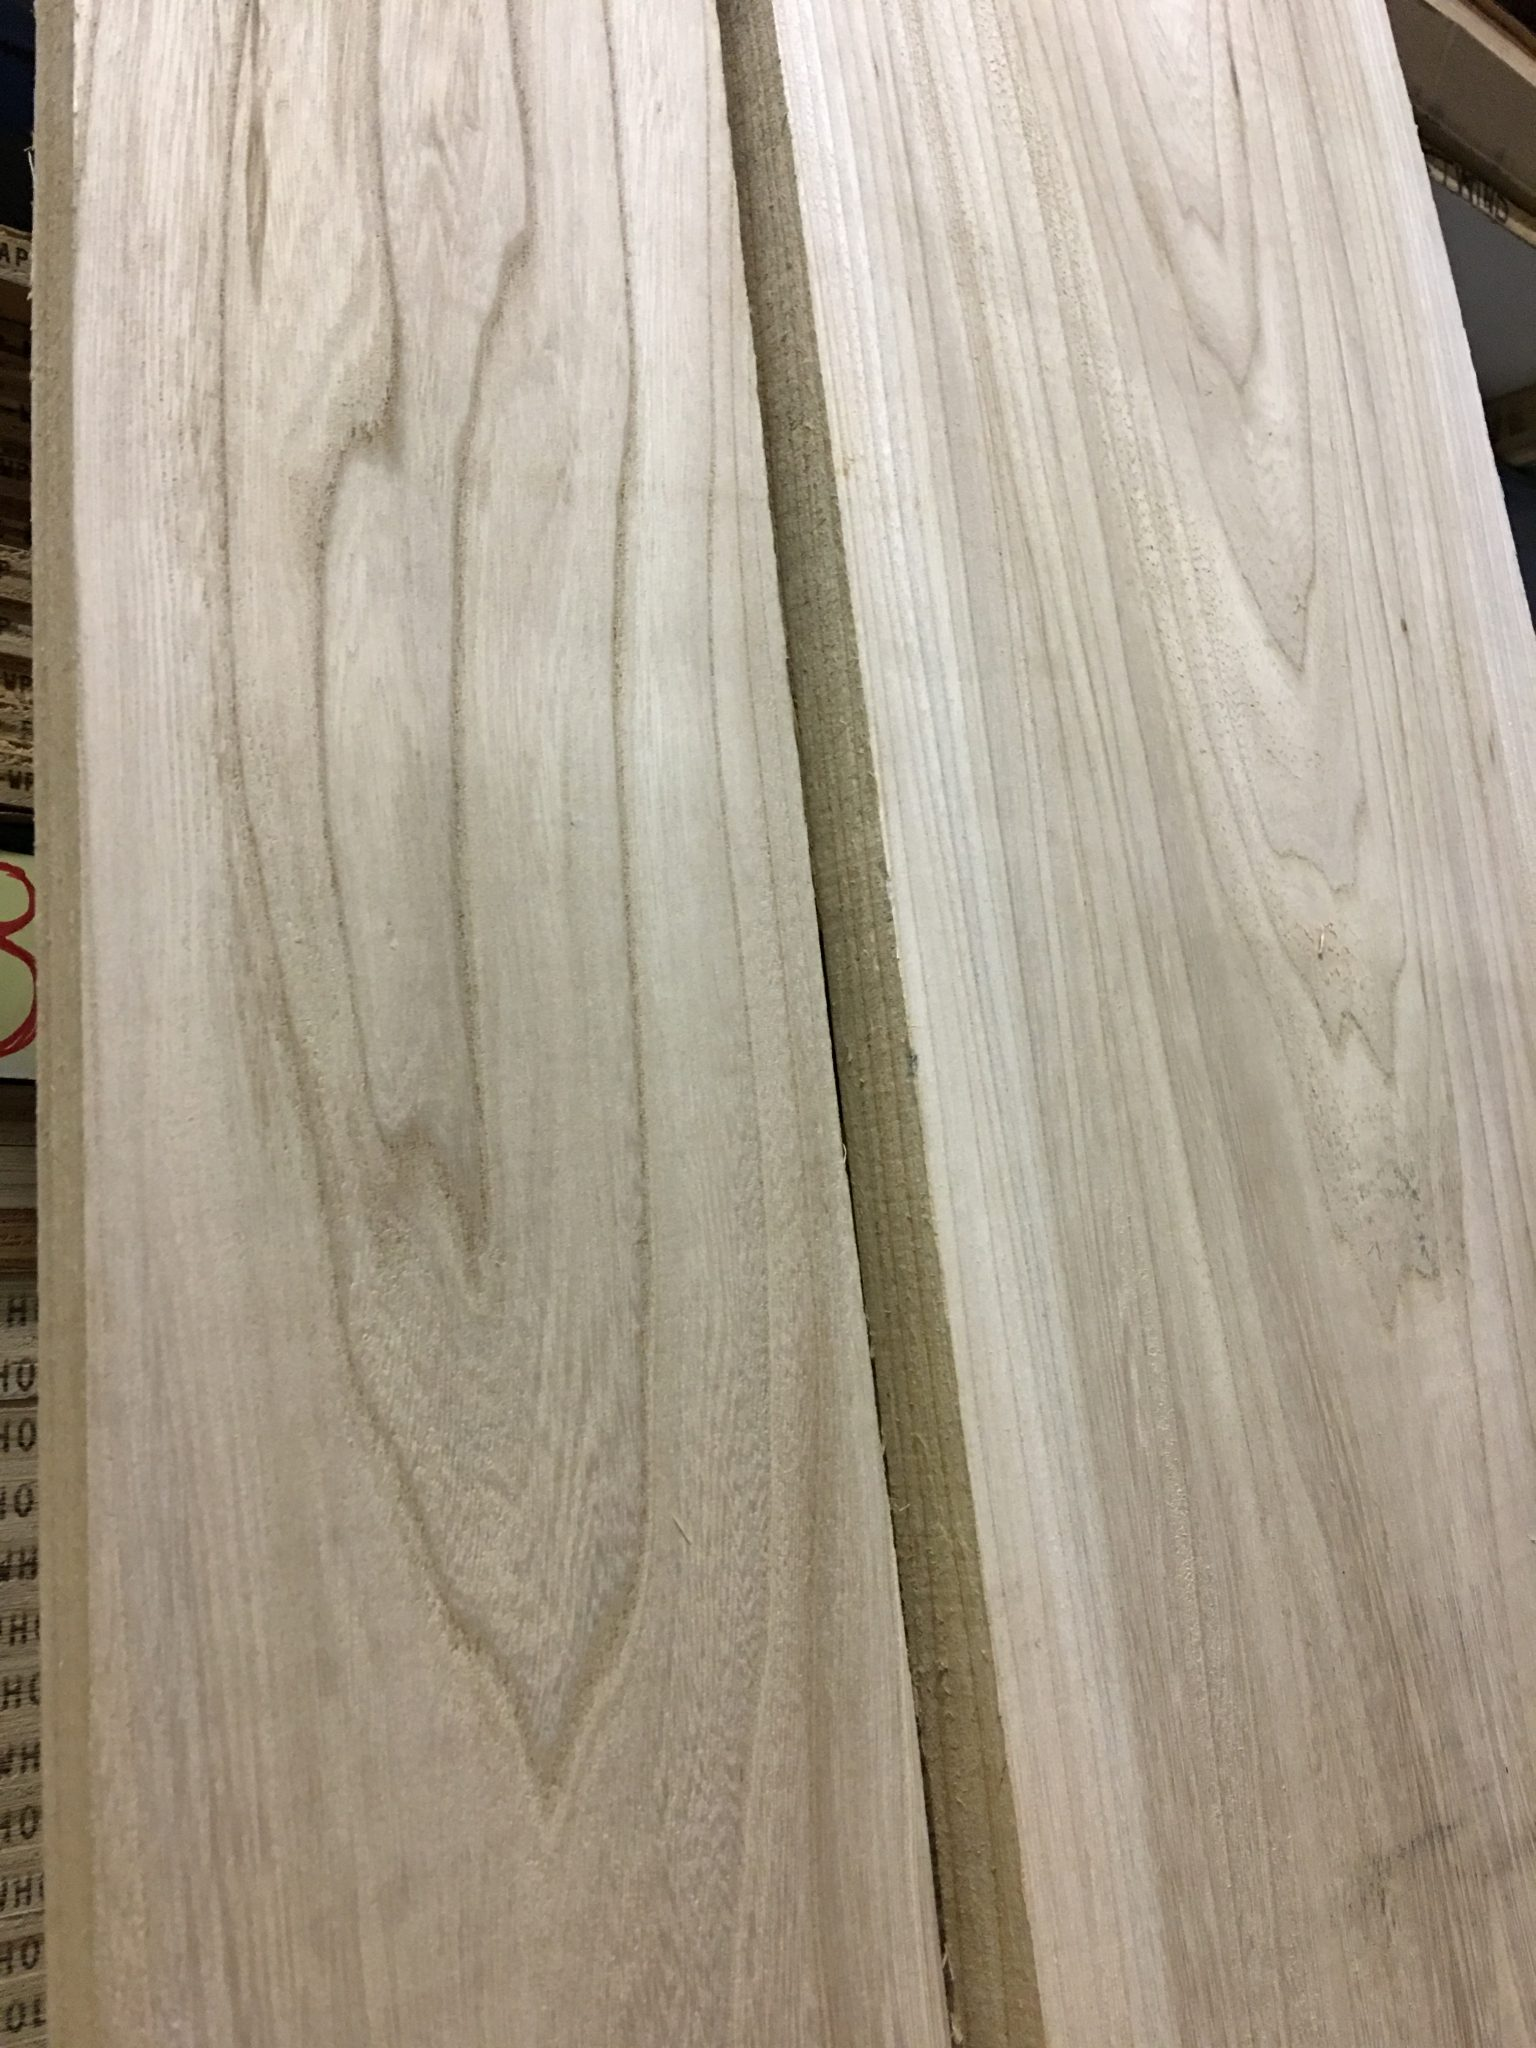 Elm West Wind Hardwood